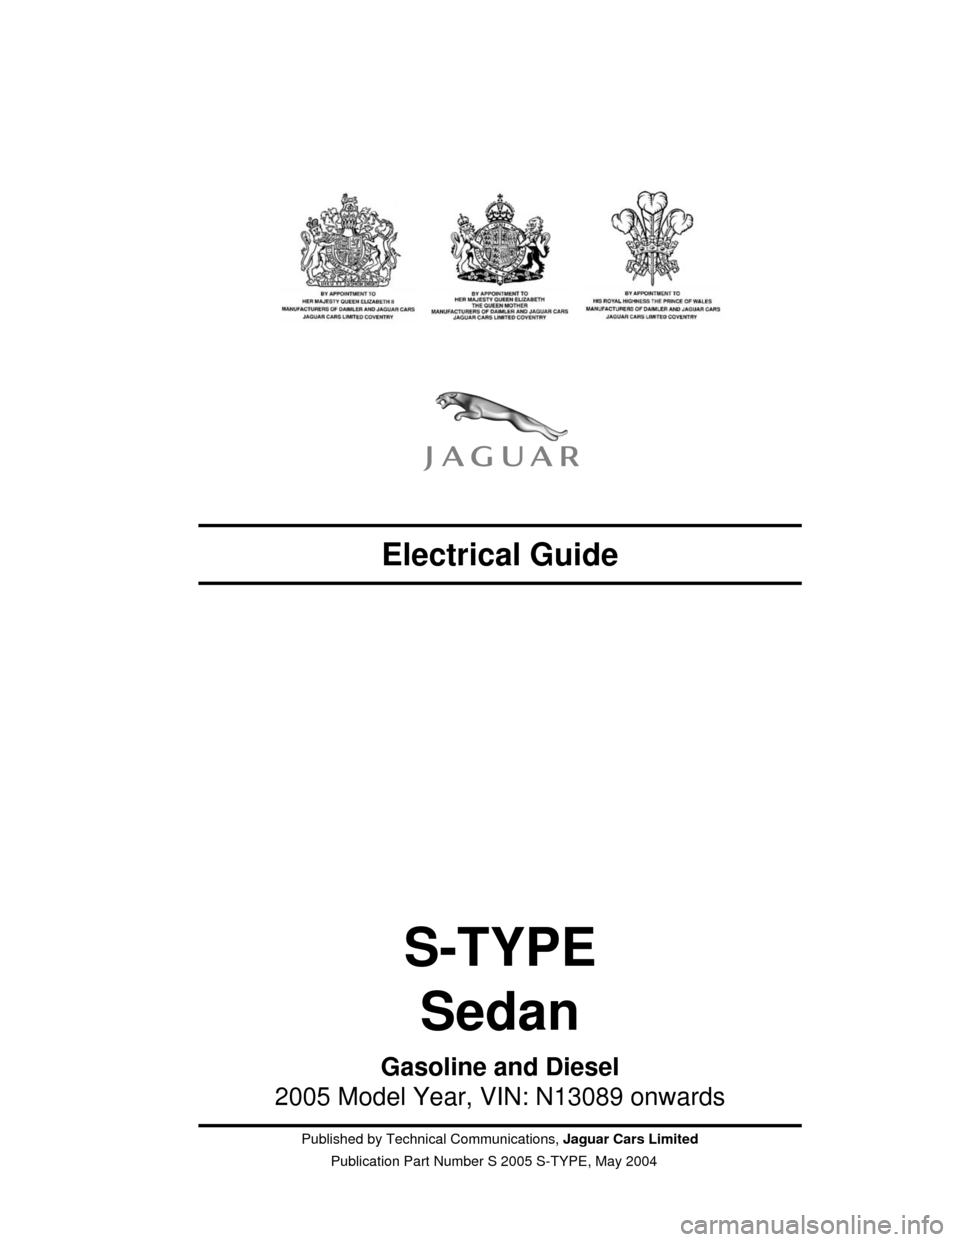 JAGUAR S TYPE 2005 1.G Electrical Manual, Page 3